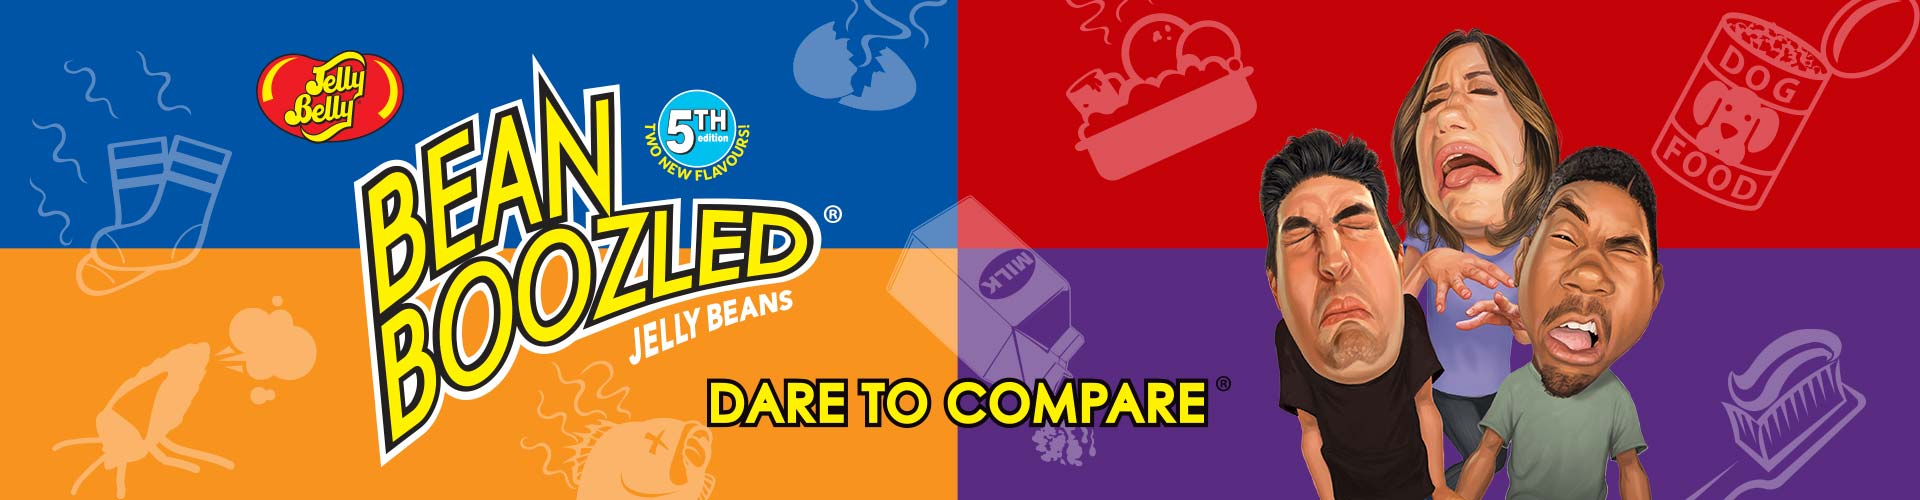 BeanBoozled Challenge Page Dare to Compare